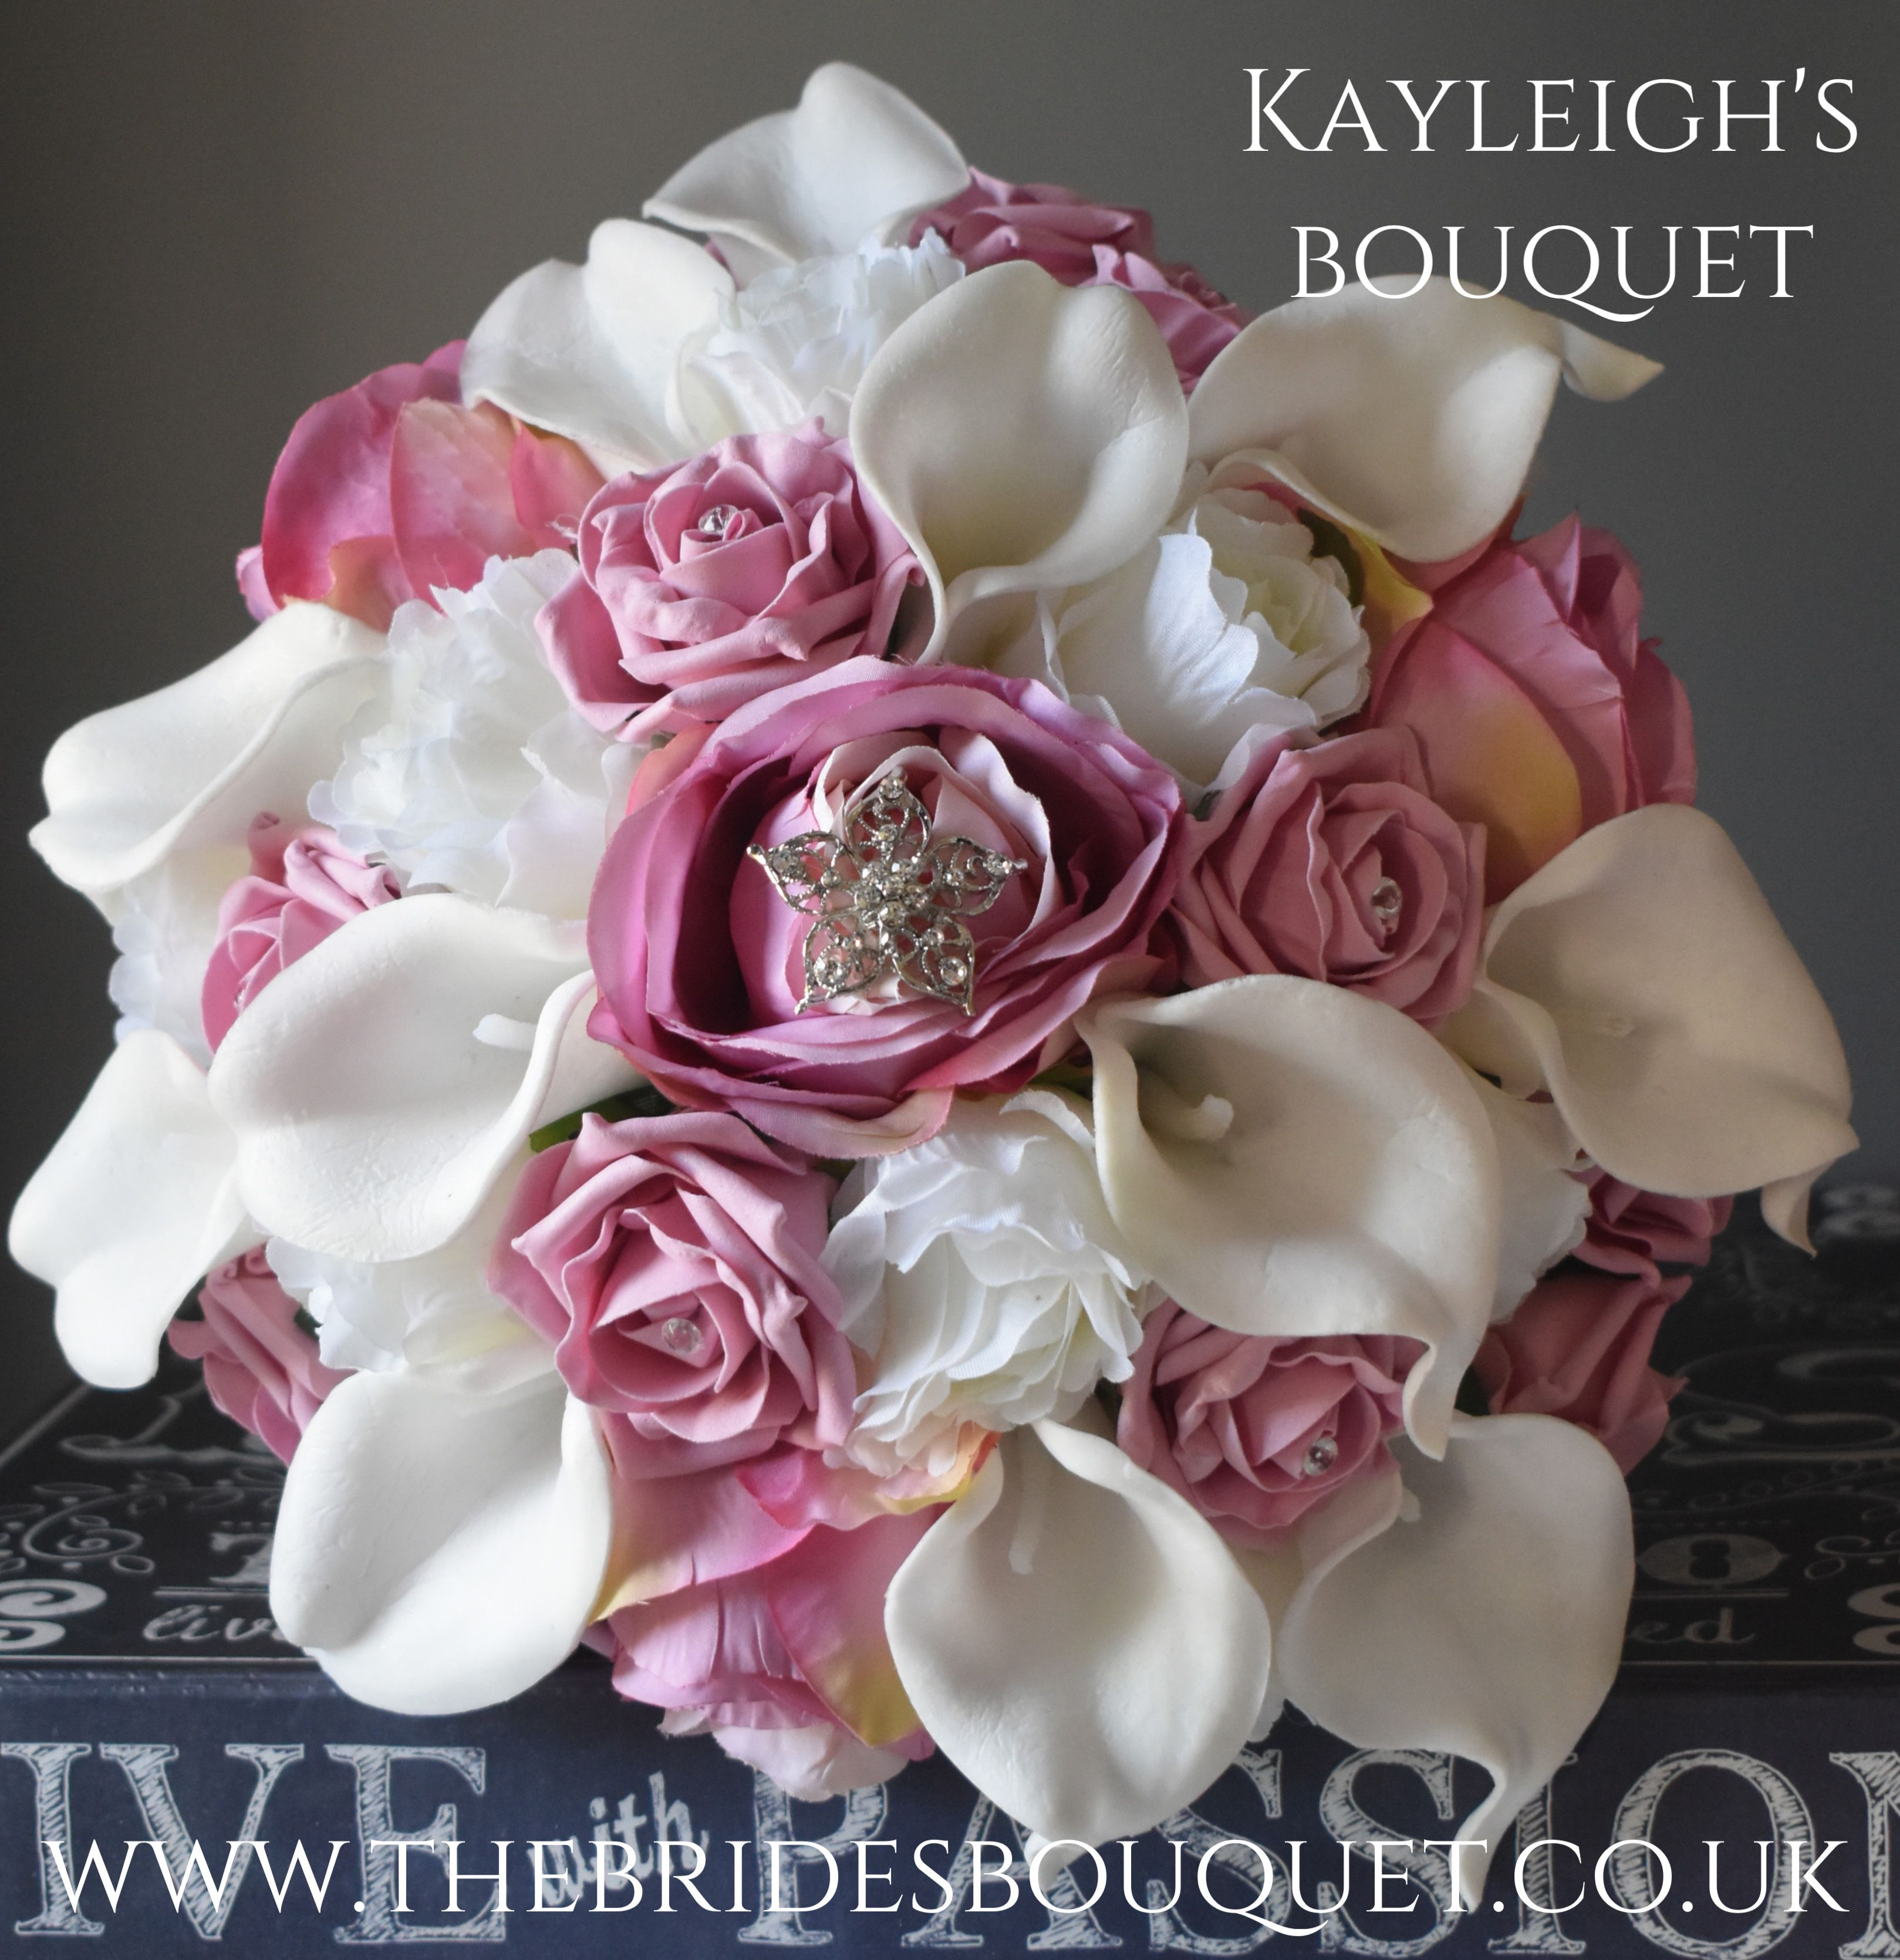 Stunning Bridal Bouquet Of Artificial Dusky Pink And Ivory Flowers Created For Bride To Be Kayleigh Flower Packaging Wedding Flower Packages Pink Wedding Theme